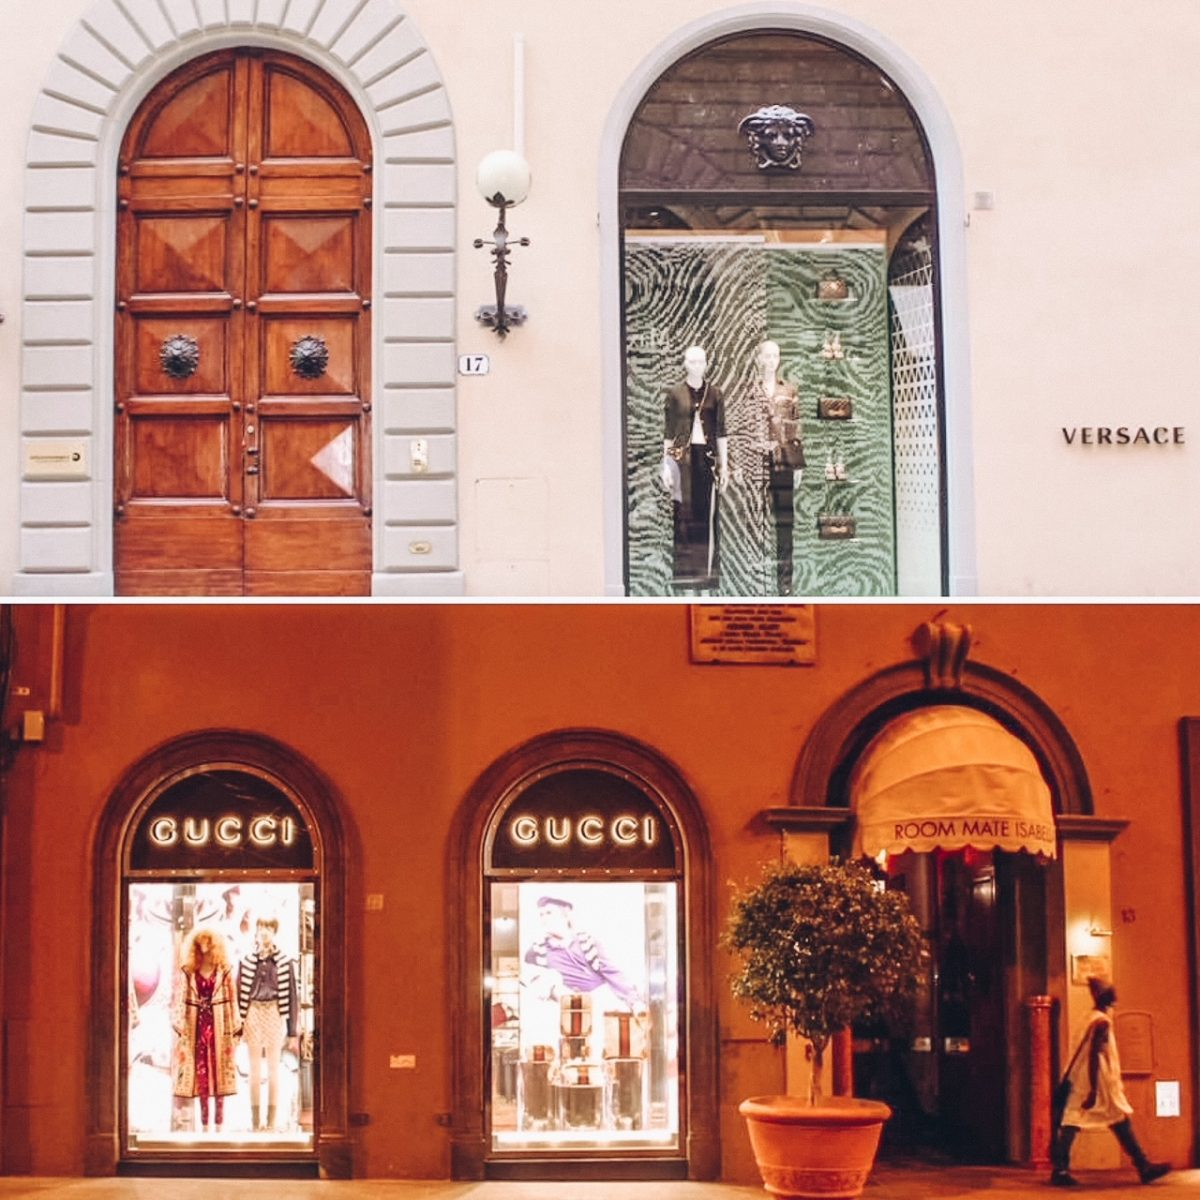 Gucci and Versace in Florence, Italy